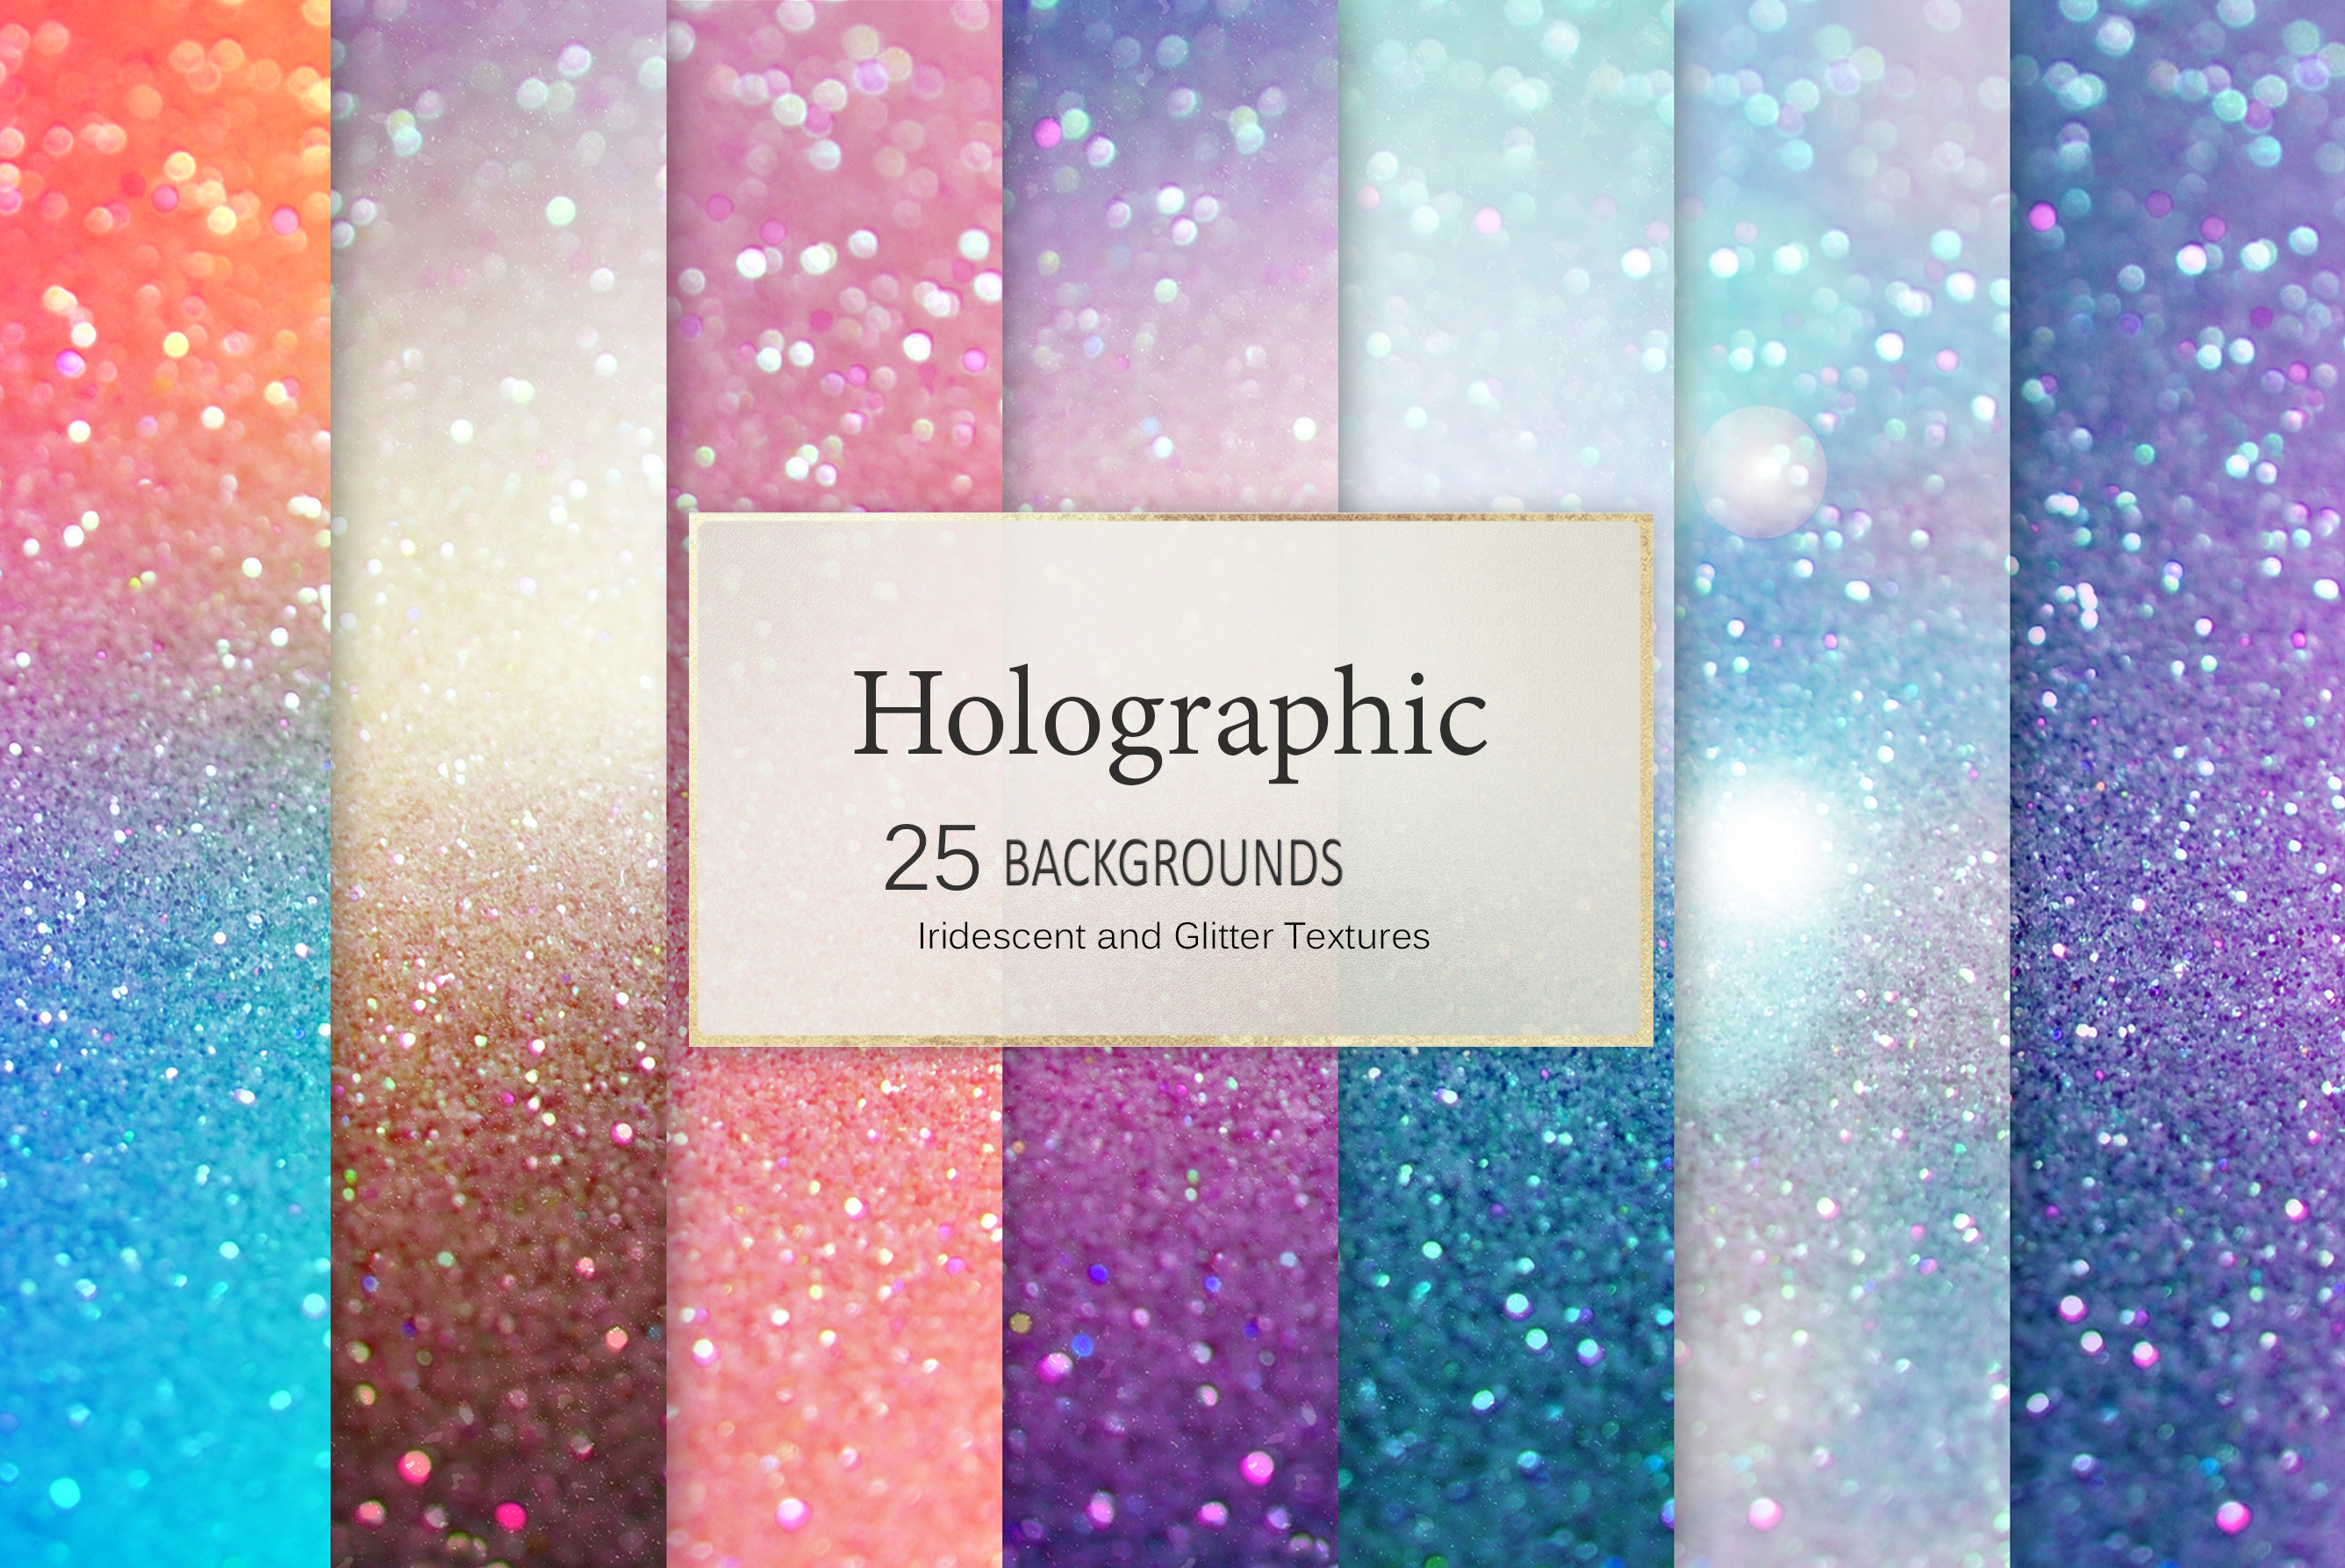 Iridescent 95 Glitter Textures Holographic Backgrounds example image 9